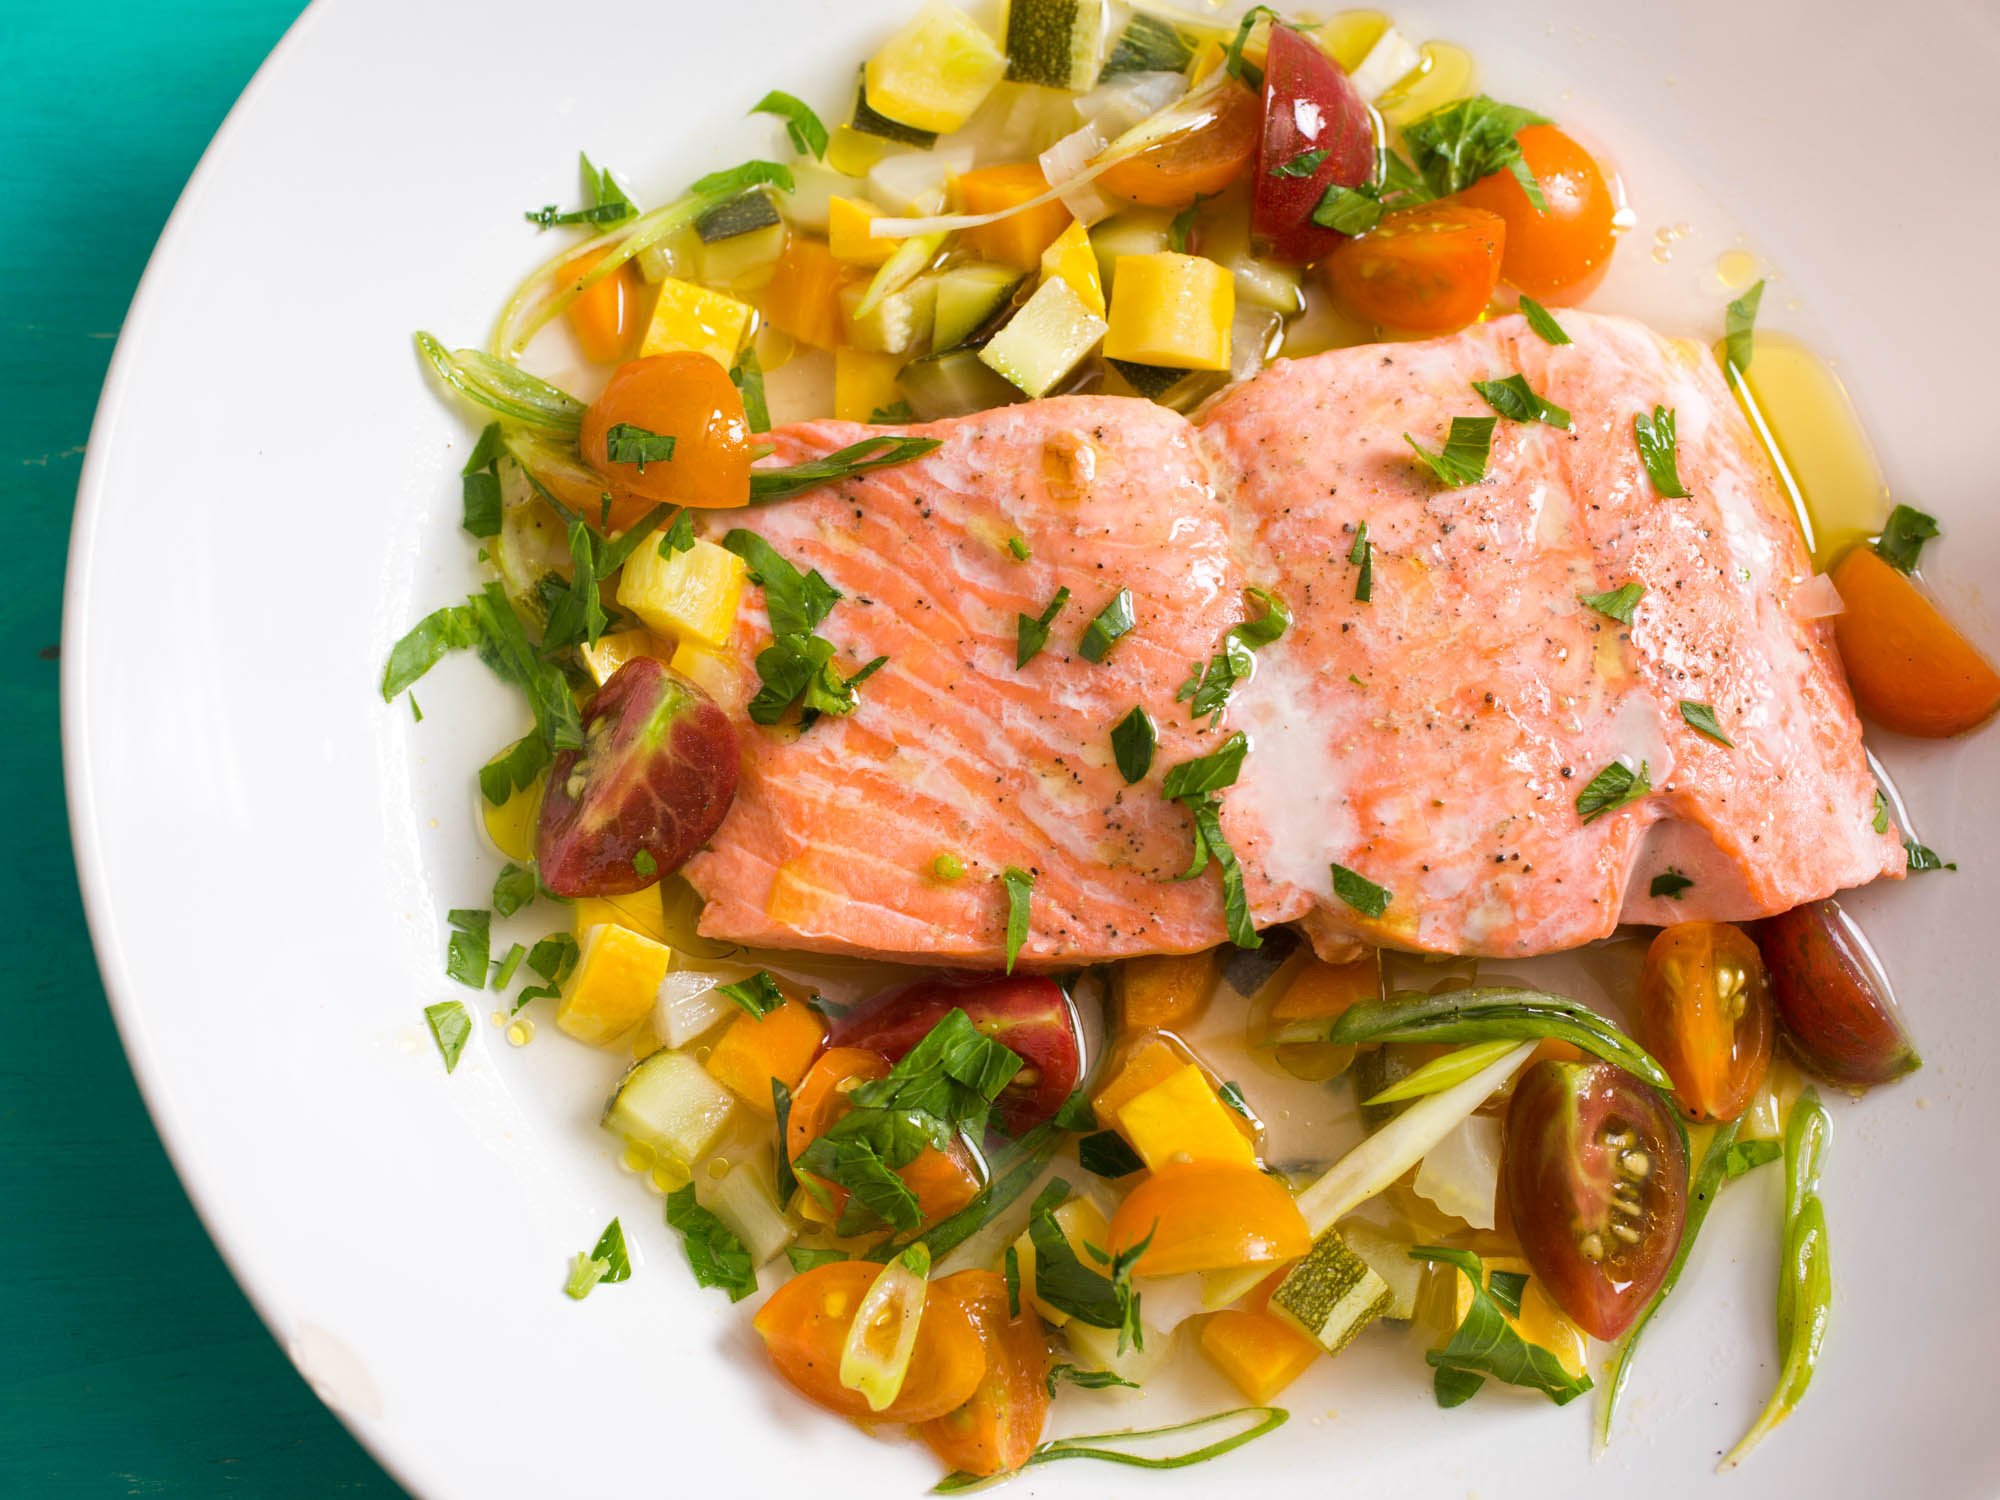 Salmon Dinner Sides  What to Eat With Salmon Tried and True Side Dishes for a